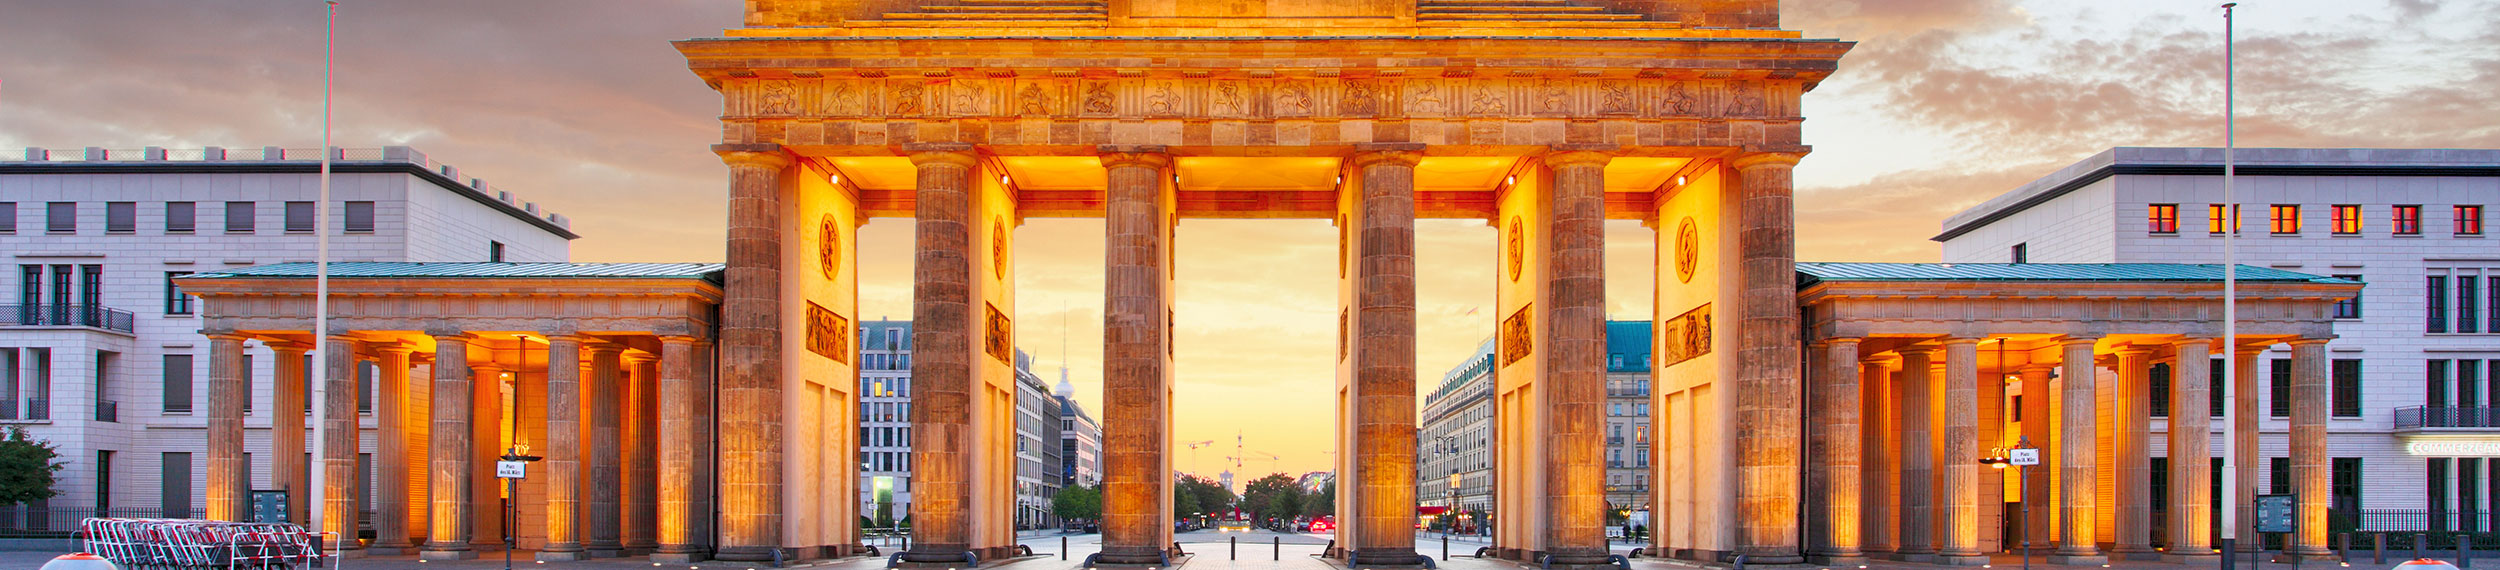 Brandenburg Gate lit up with an orange glow at dusk in Berlin, Germany.